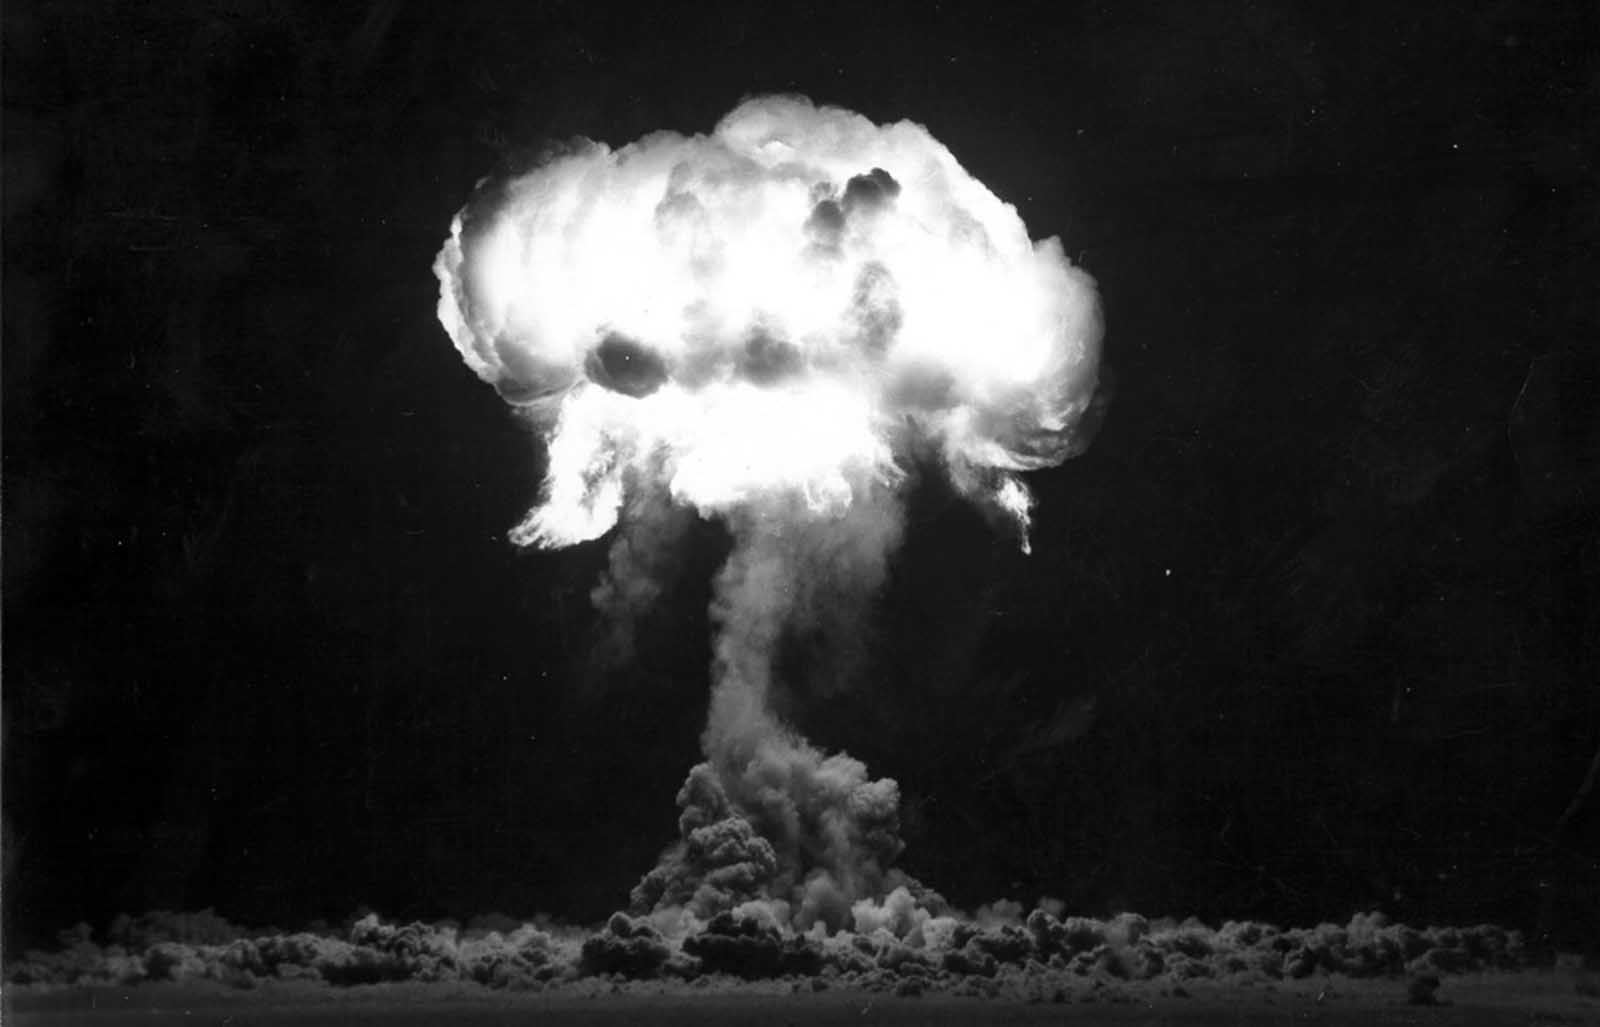 During the Plumbbob test at the Nevada Test Site on August 30, 1957, the Franklin Prime shot is detonated from a balloon in Yucca Flat at an altitude of 750 feet.